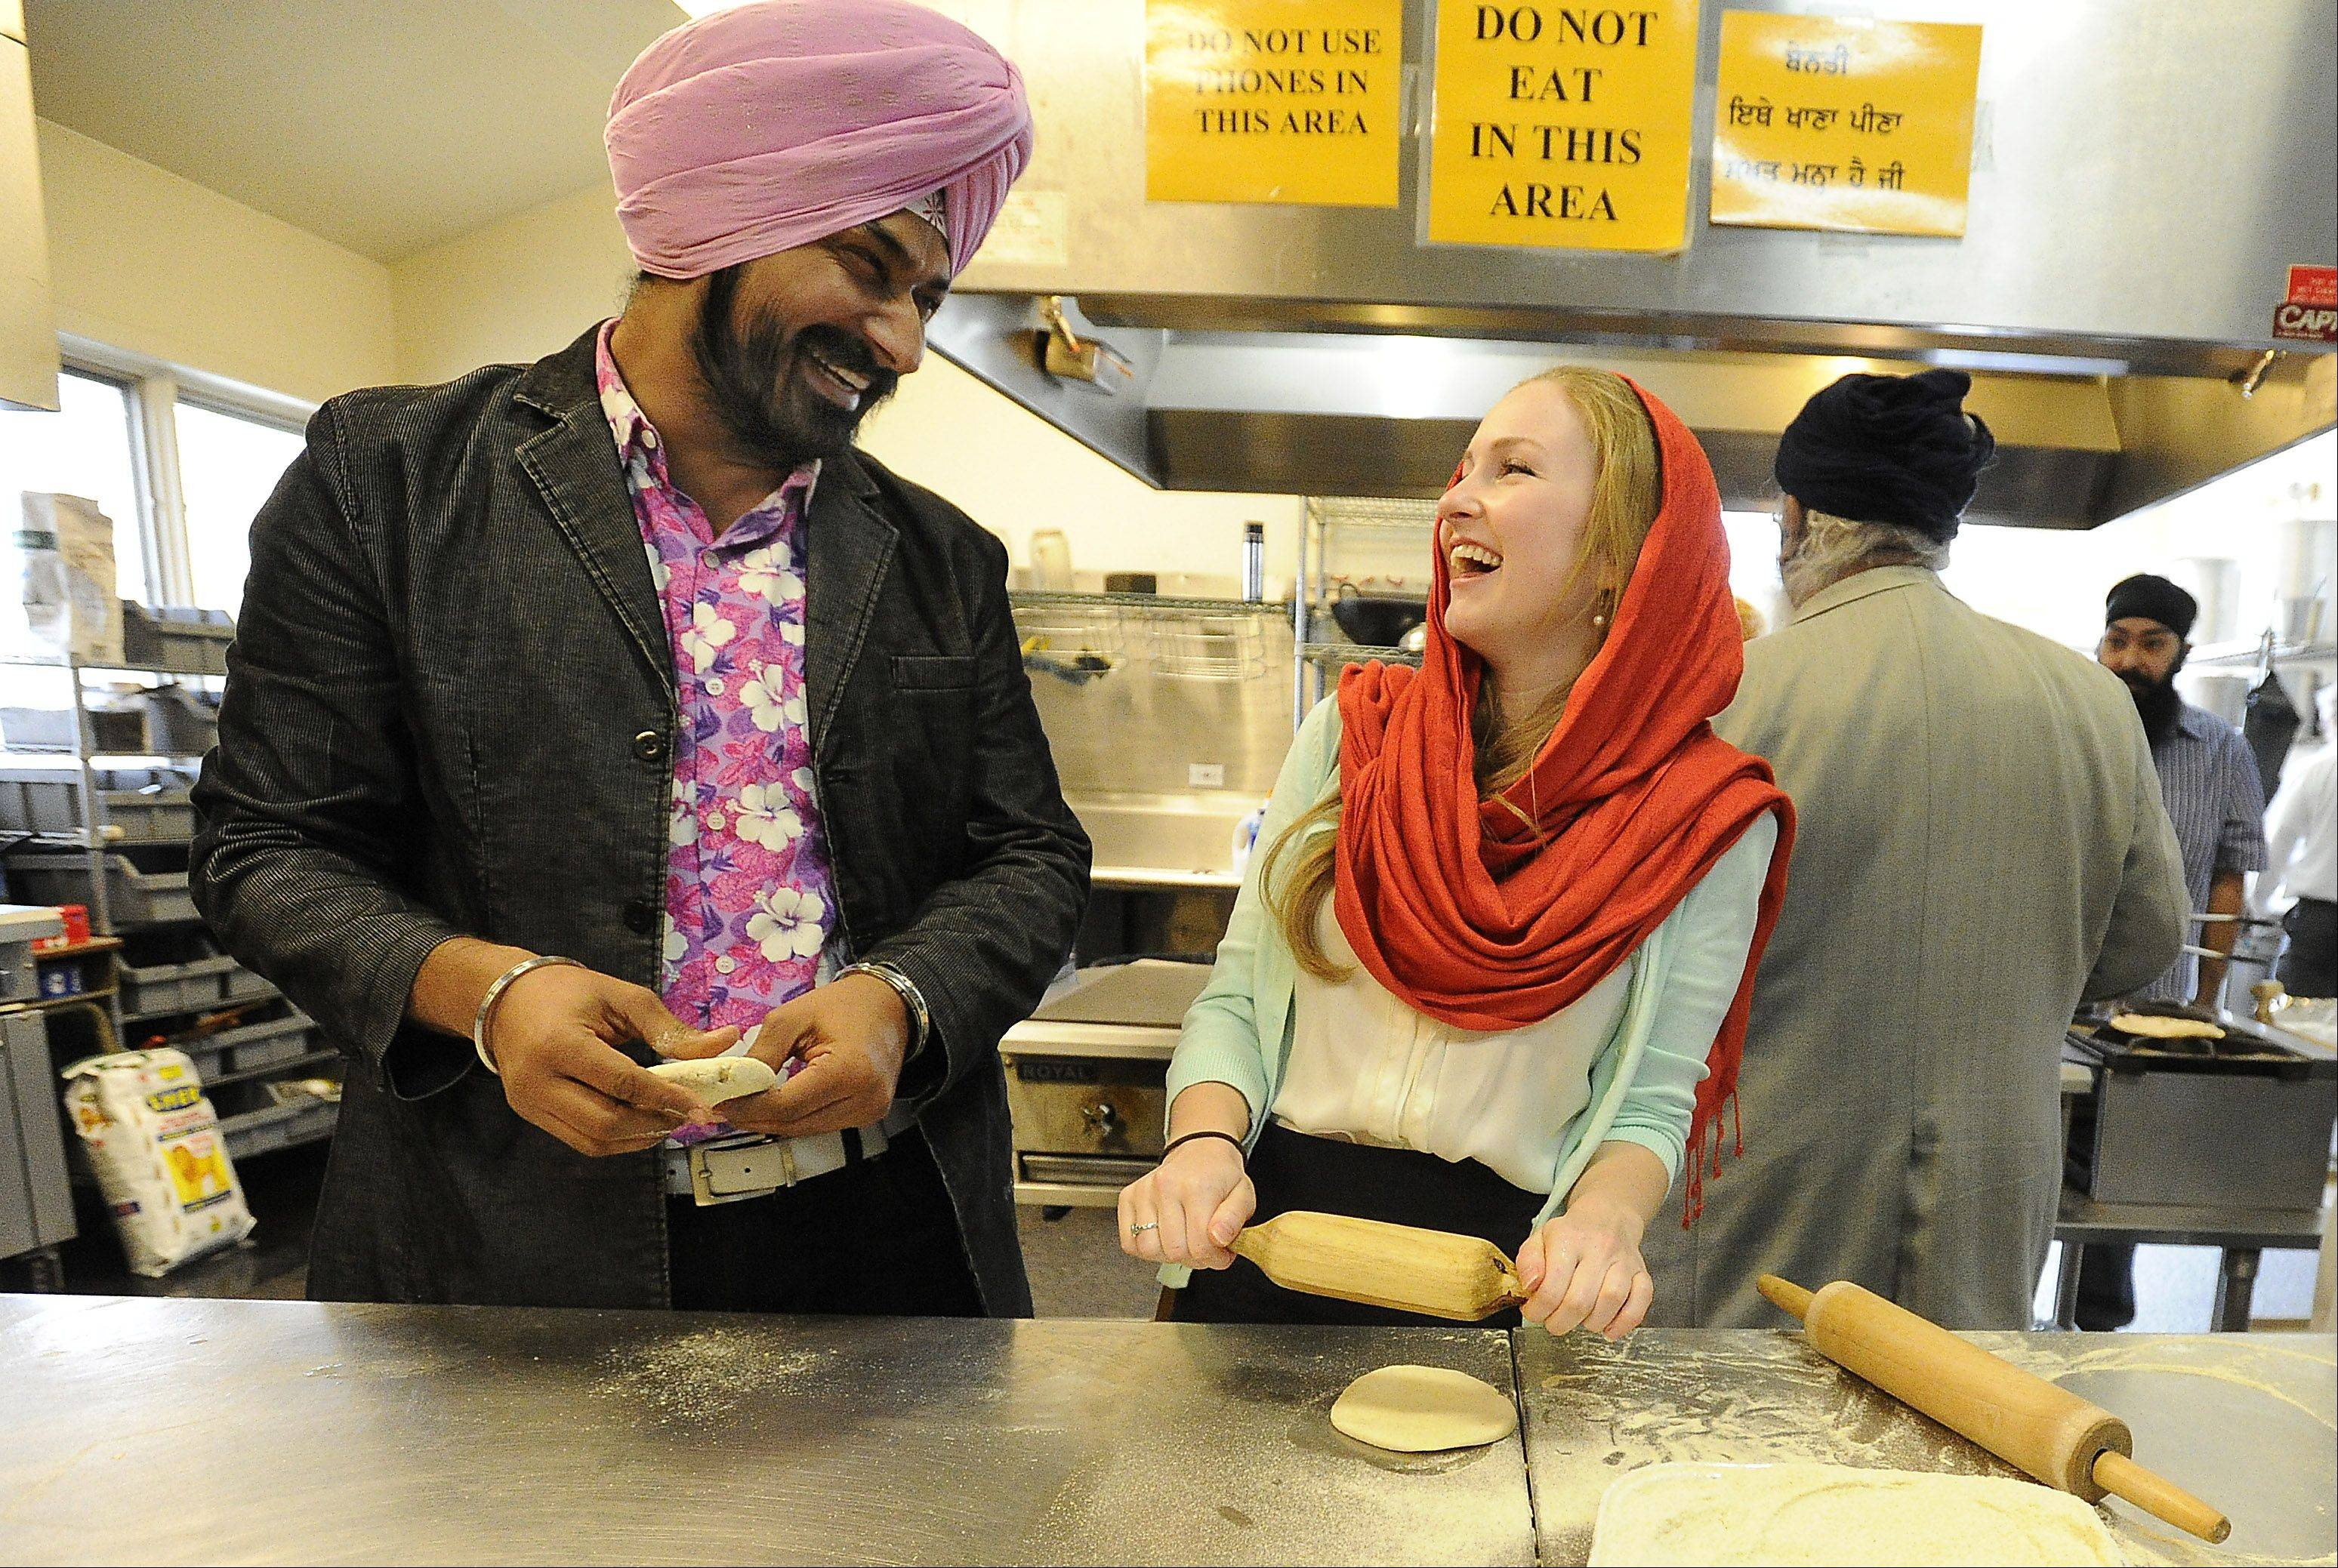 Indian TV/Bollywood film star Gurucharan Singh visits the Sikh Gurdwara Religious Society of Chicago in Palatine with her friend Kari Irwin, 25, making Chapati and having a good time.